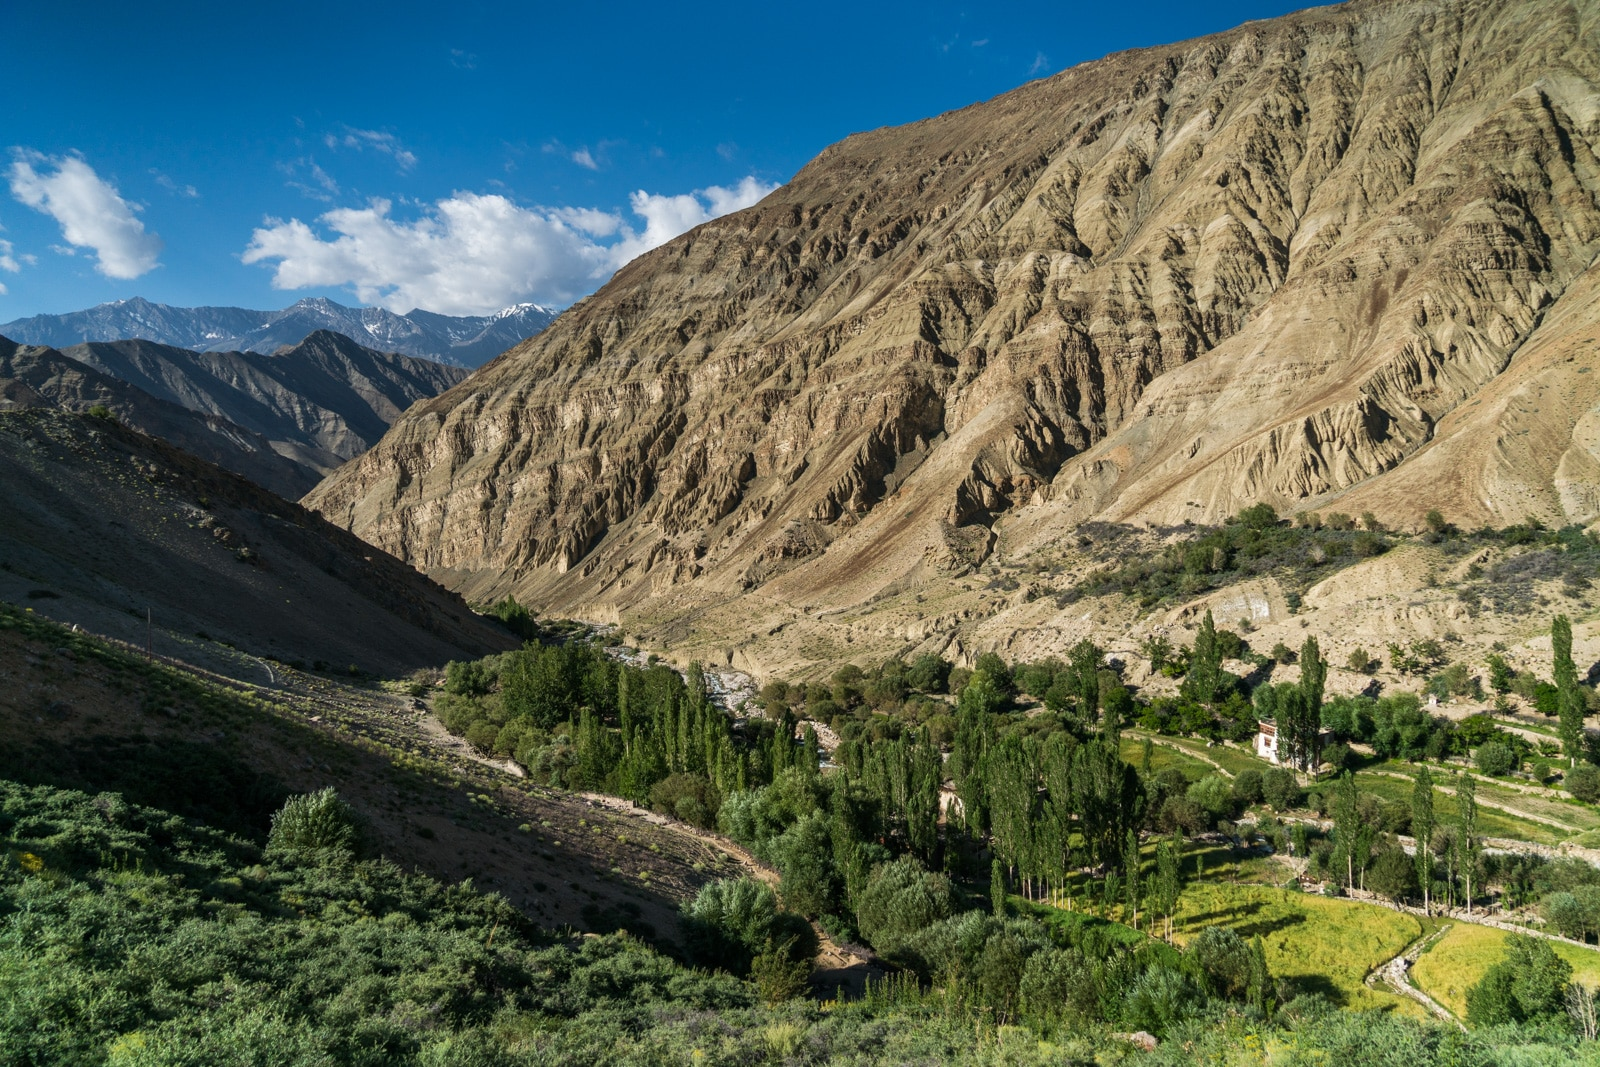 Short 3-day itinerary and guide to the Sham Valley trek in Ladakh, India - View while trekking out of Yangthang village - Lost With Purpose travel blog